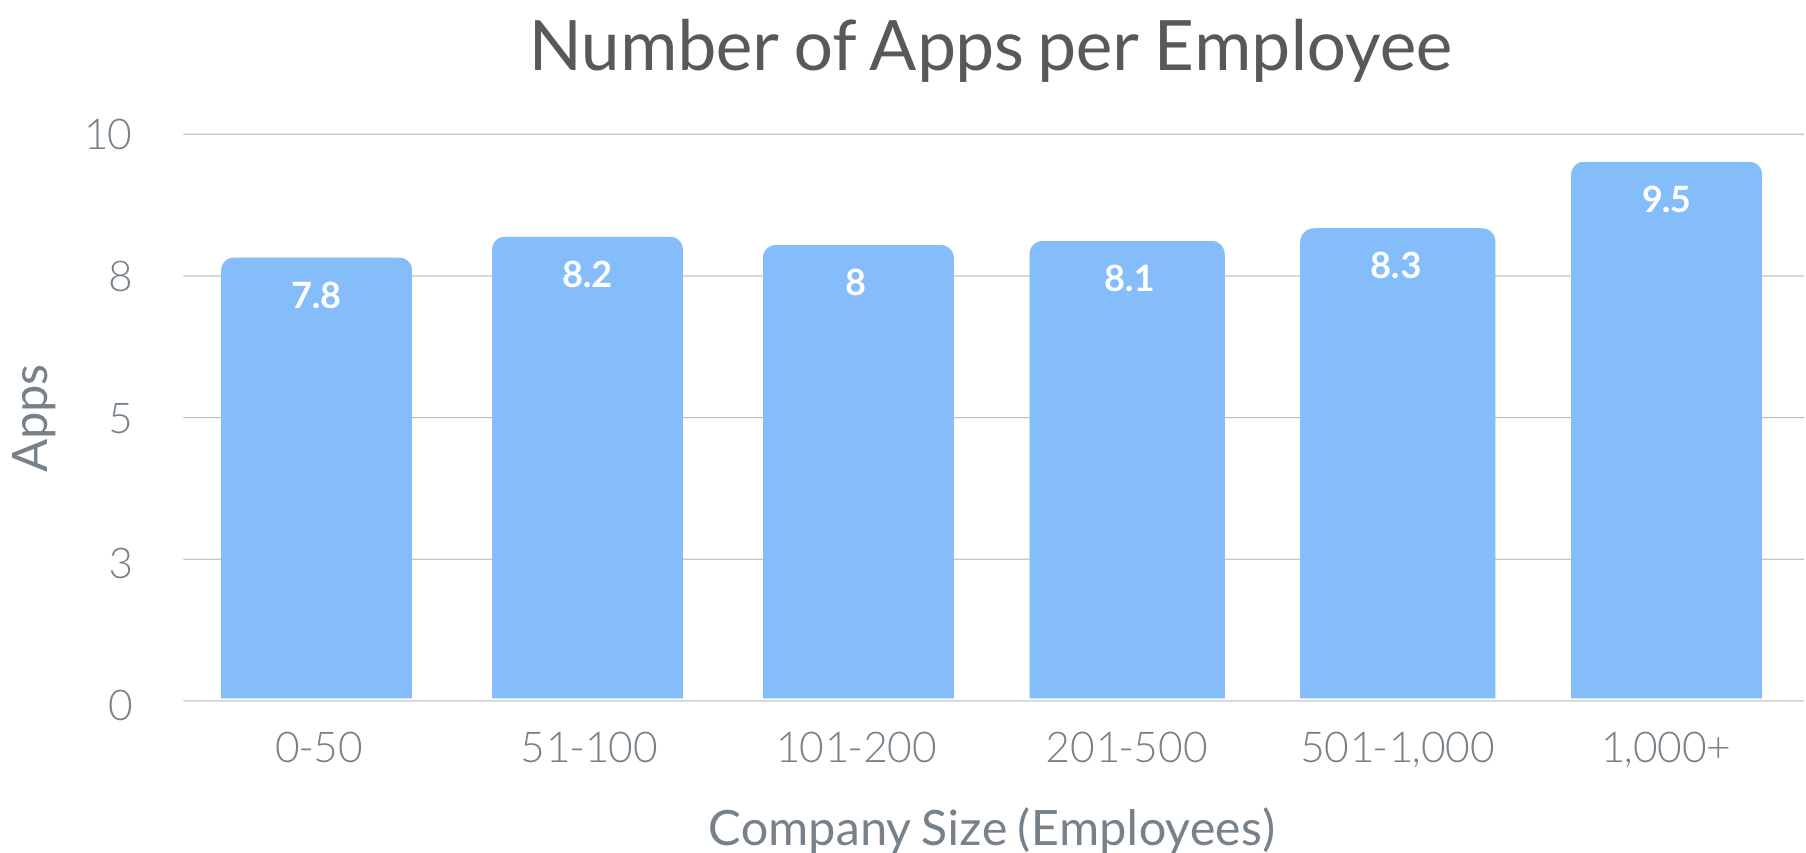 Number of Apps per Employee 2019